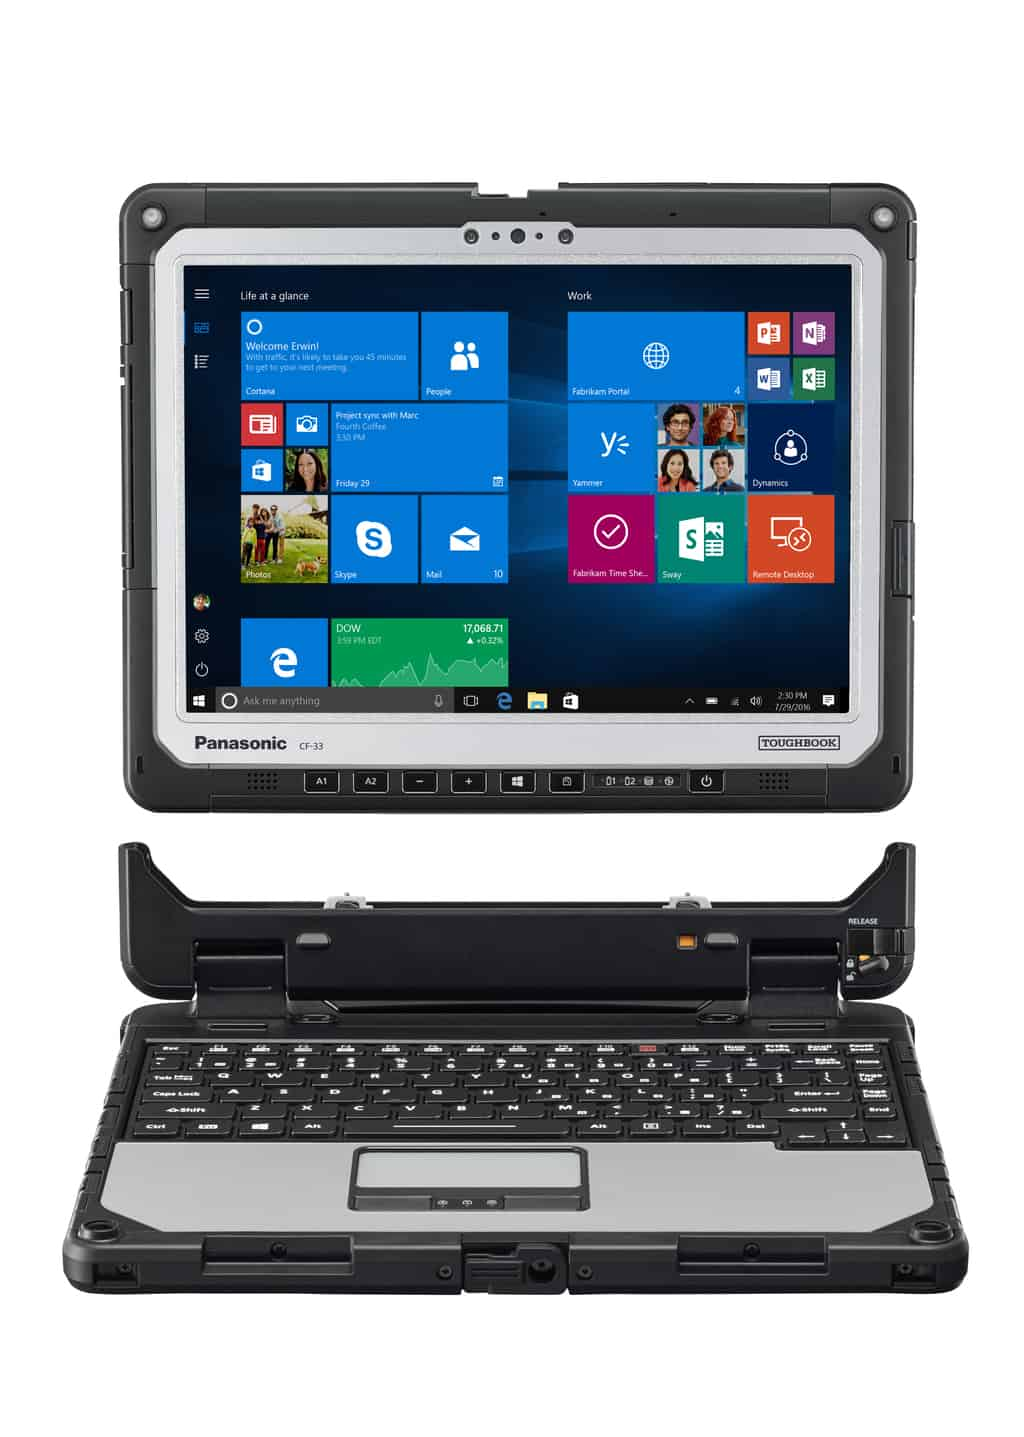 Panasonic can help you take windows 10 to the extreme with the new toughbook 33 - onmsft. Com - may 23, 2017